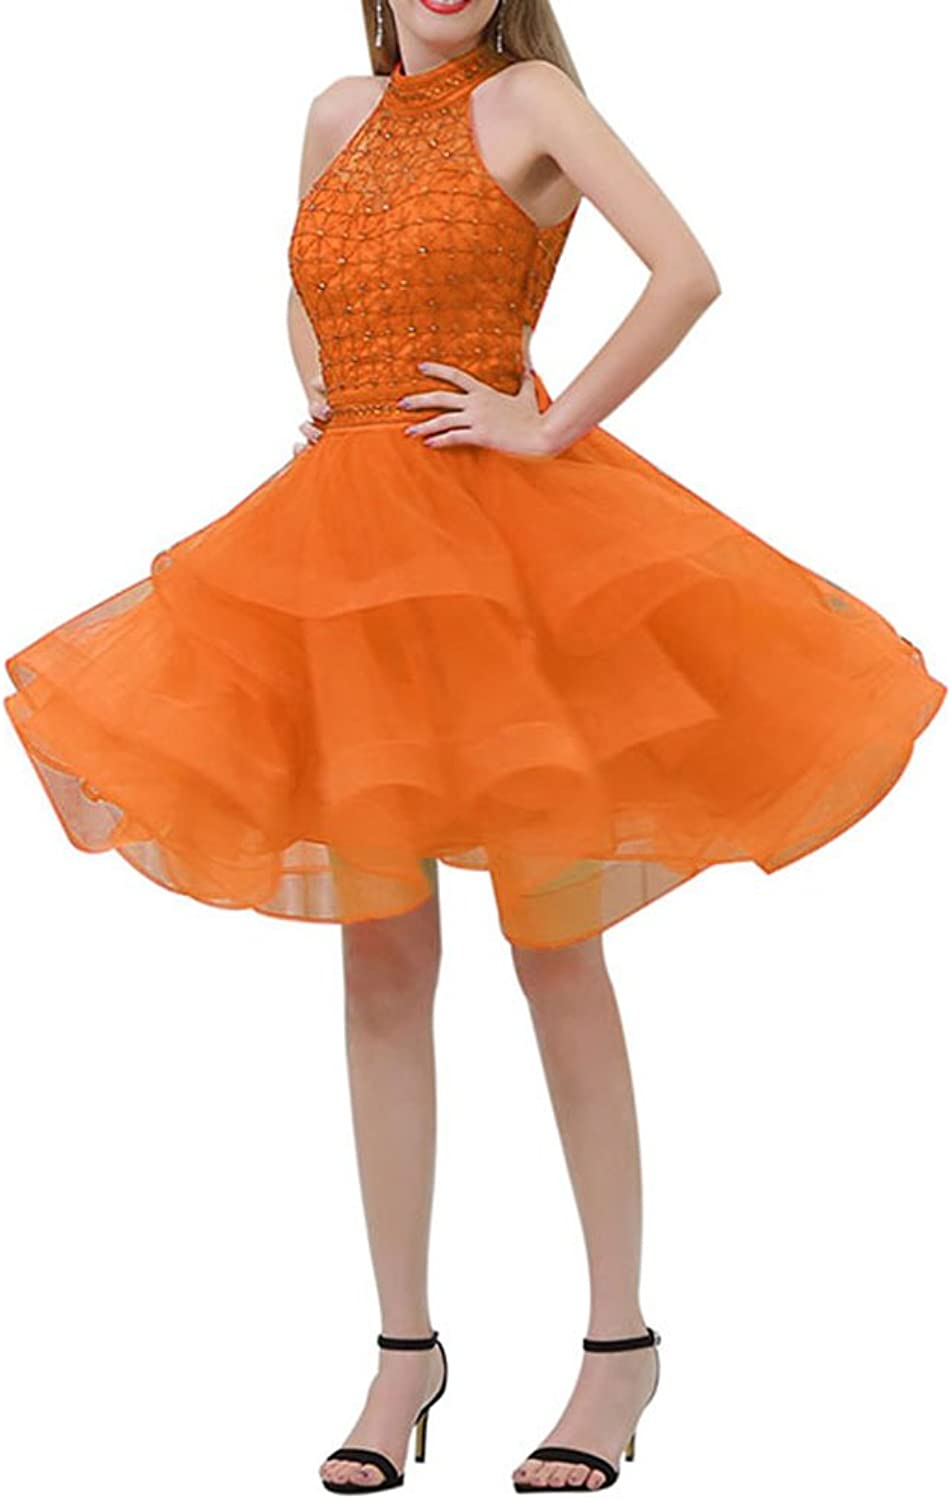 Chenghouse Short Two Piece Homecoming Dresses ONeck Homecoming Graduation Dresses